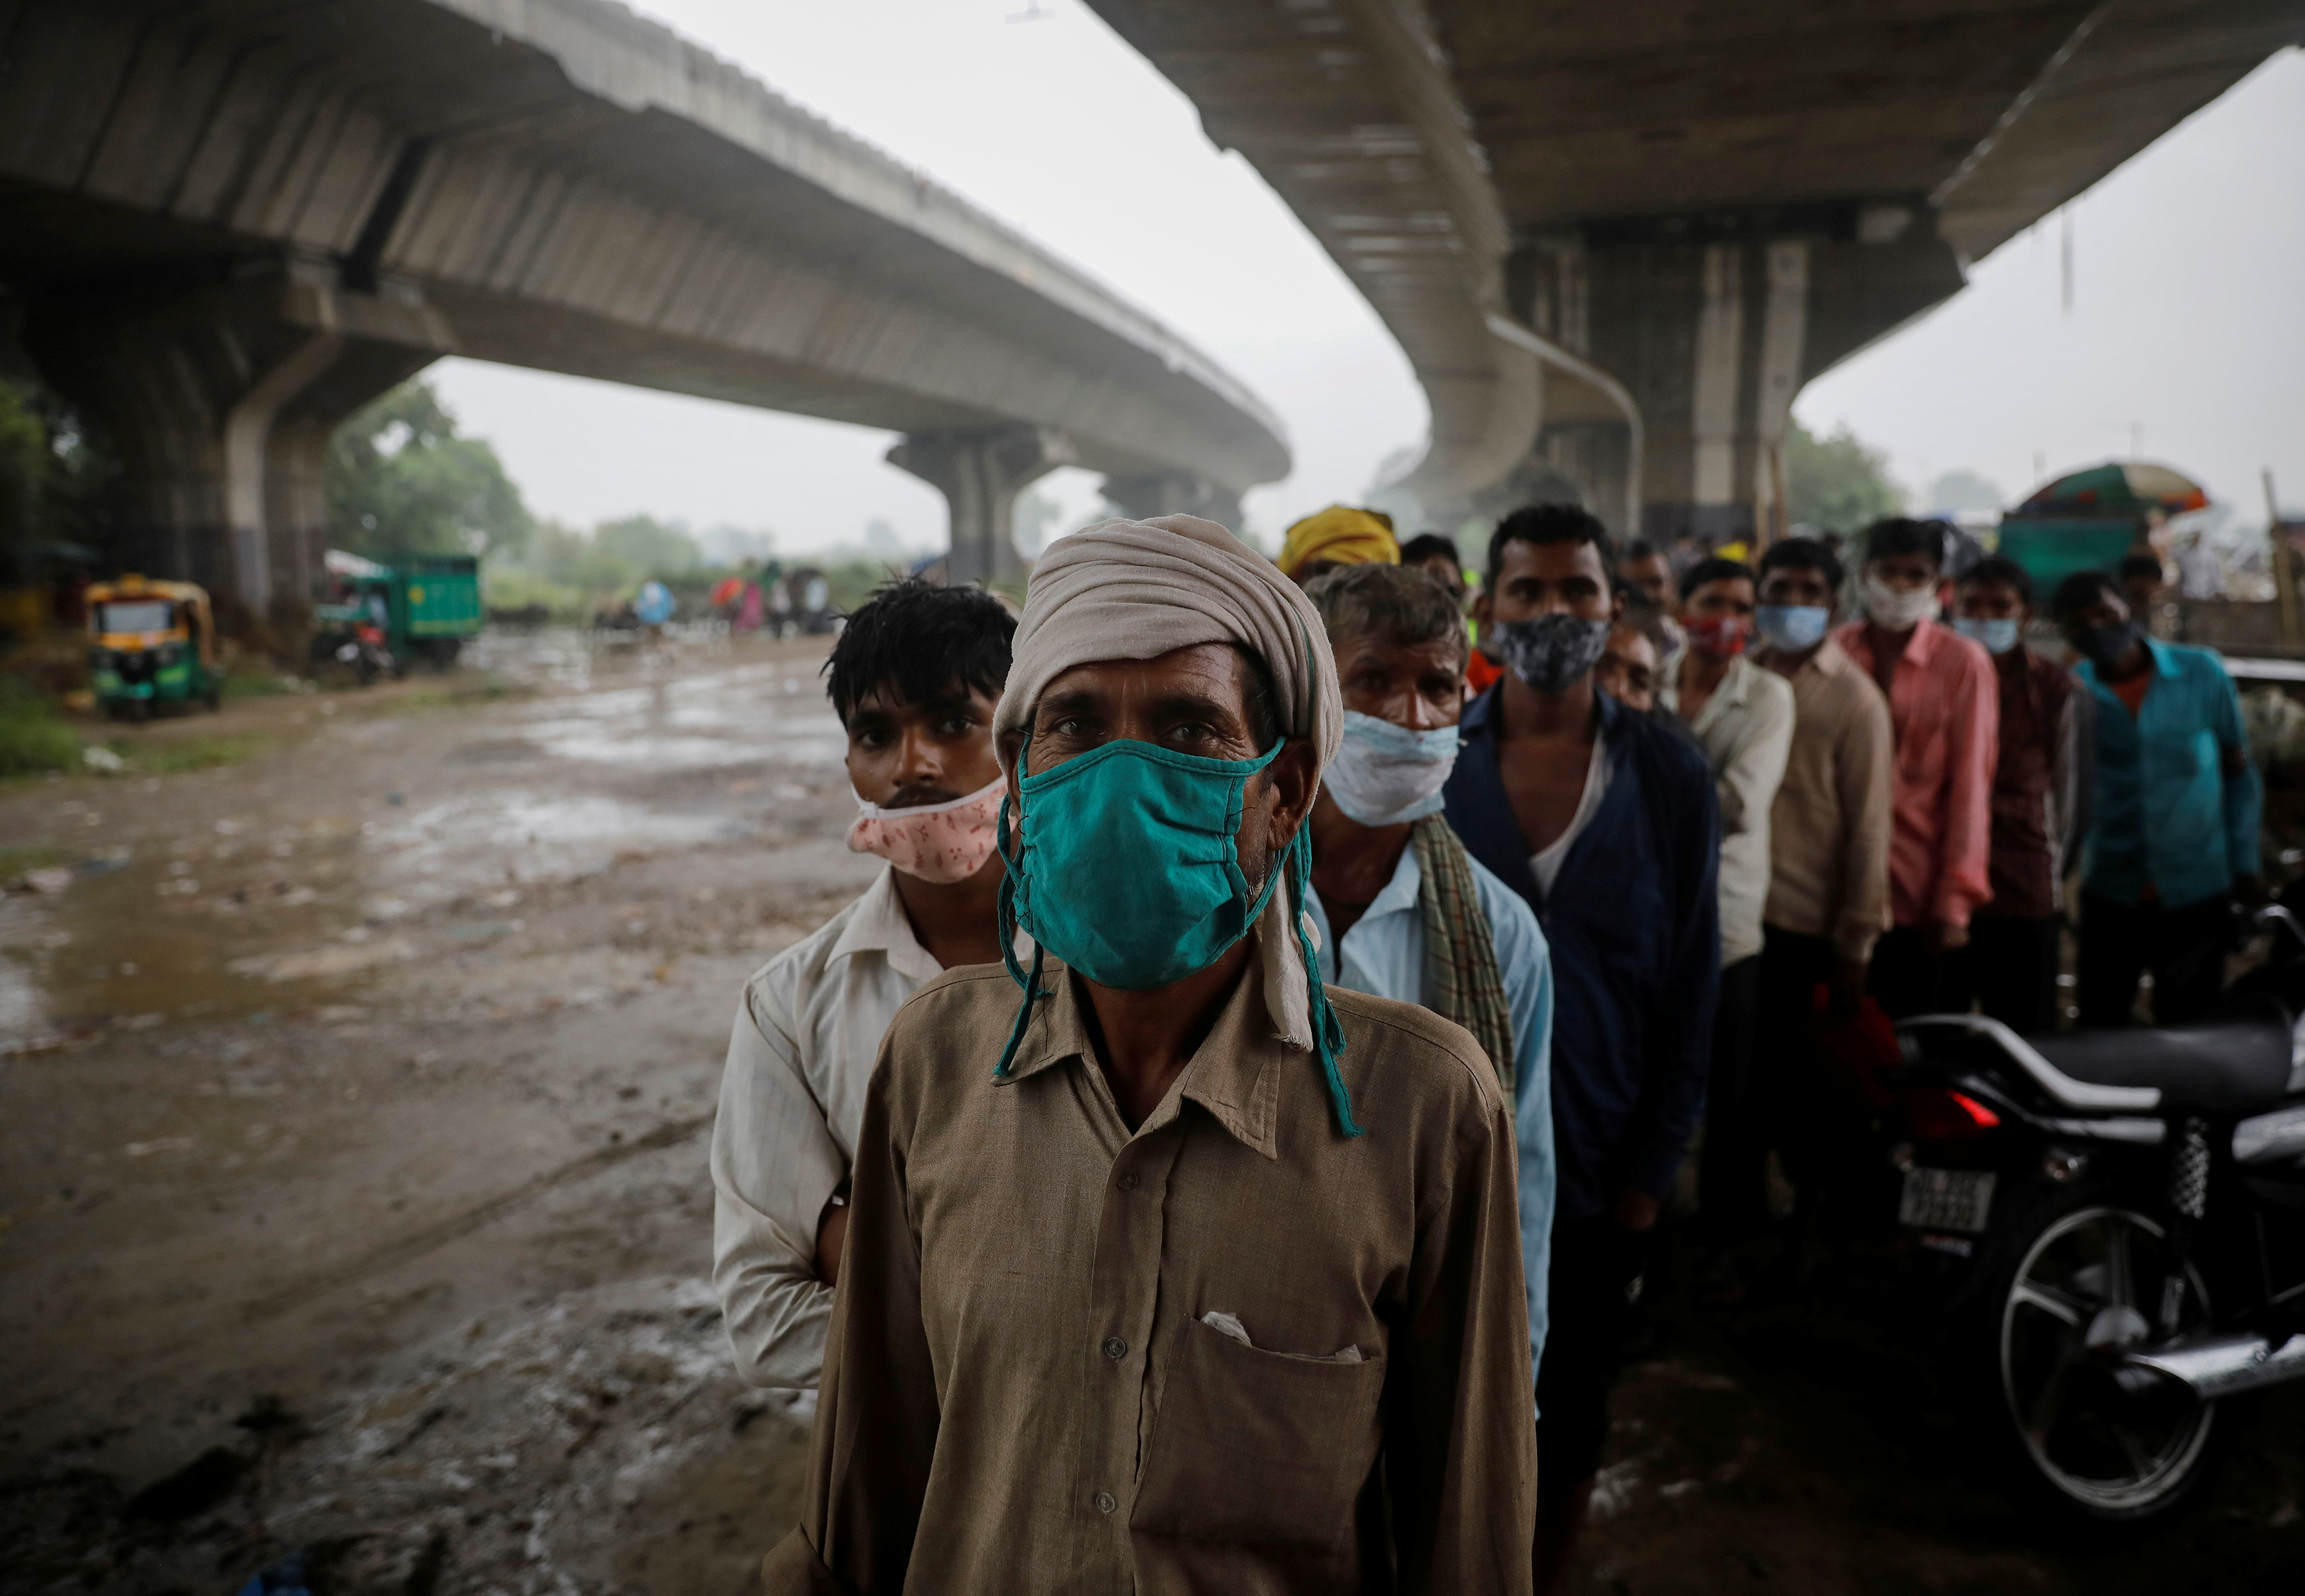 People wait to receive a dose of COVAXIN coronavirus disease (COVID-19) vaccine manufactured by Bharat Biotech, during a vaccination drive organised by SEEDS, an NGO which normally specialise in providing relief after floods and other natural disasters, at an under-construction flyover in New Delhi, India, August 31, 2021. REUTERS/Adnan Abidi